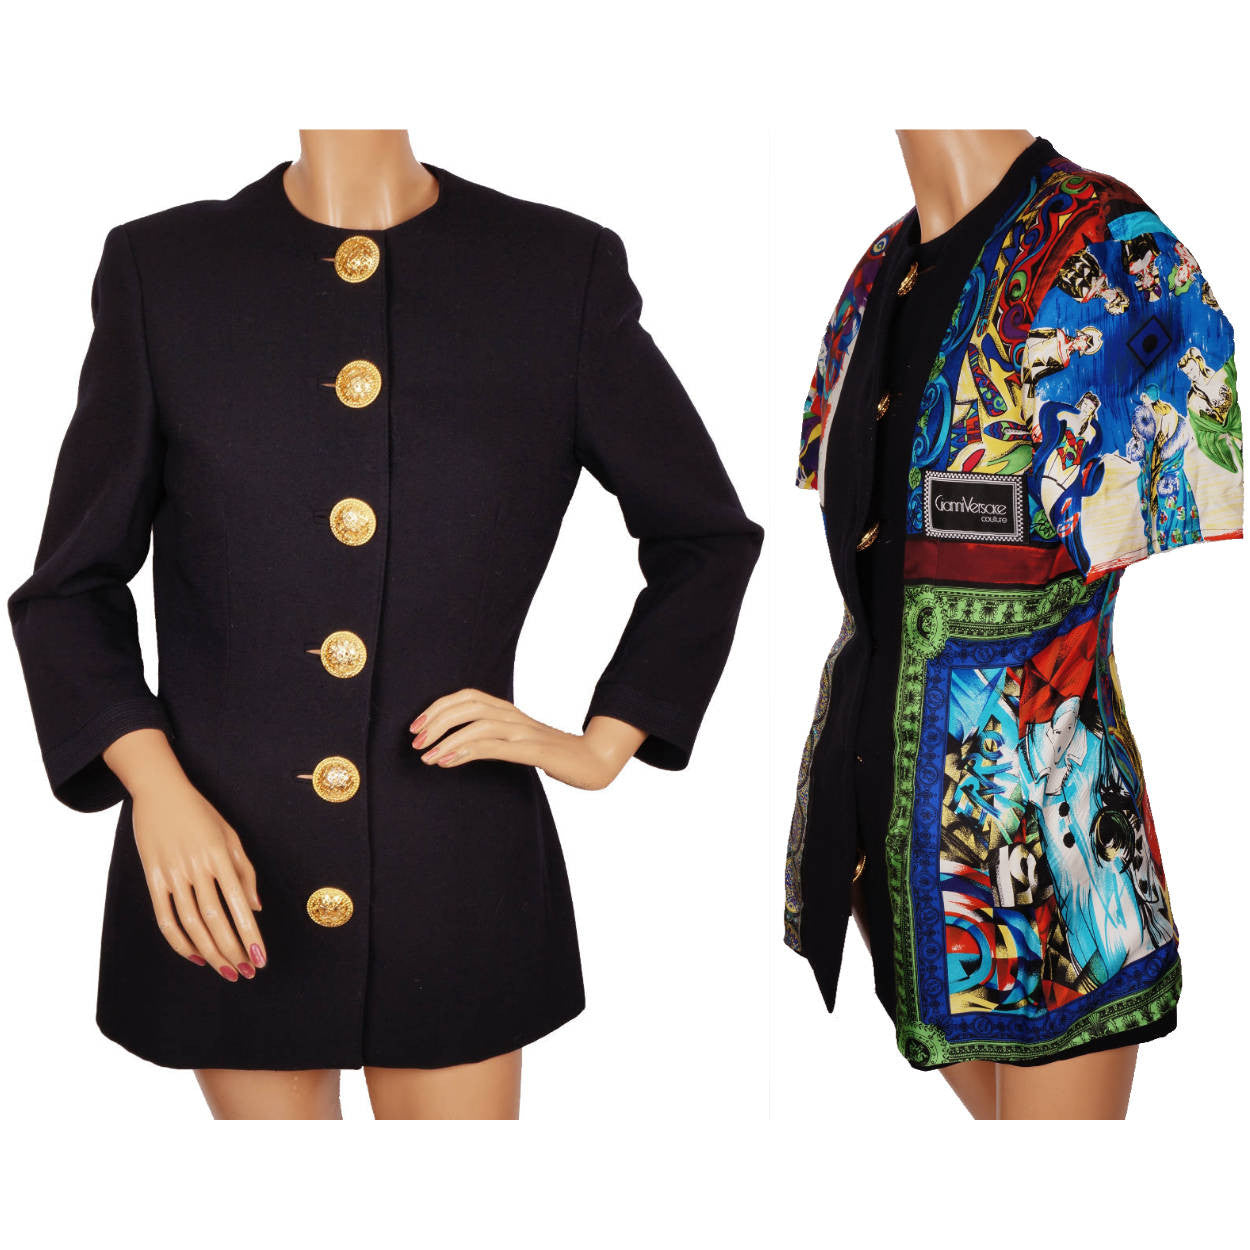 a7ab95f19bb2d7 Vintage Gianni Versace Couture Silk and Wool Ladies Jacket Size 6 Smal